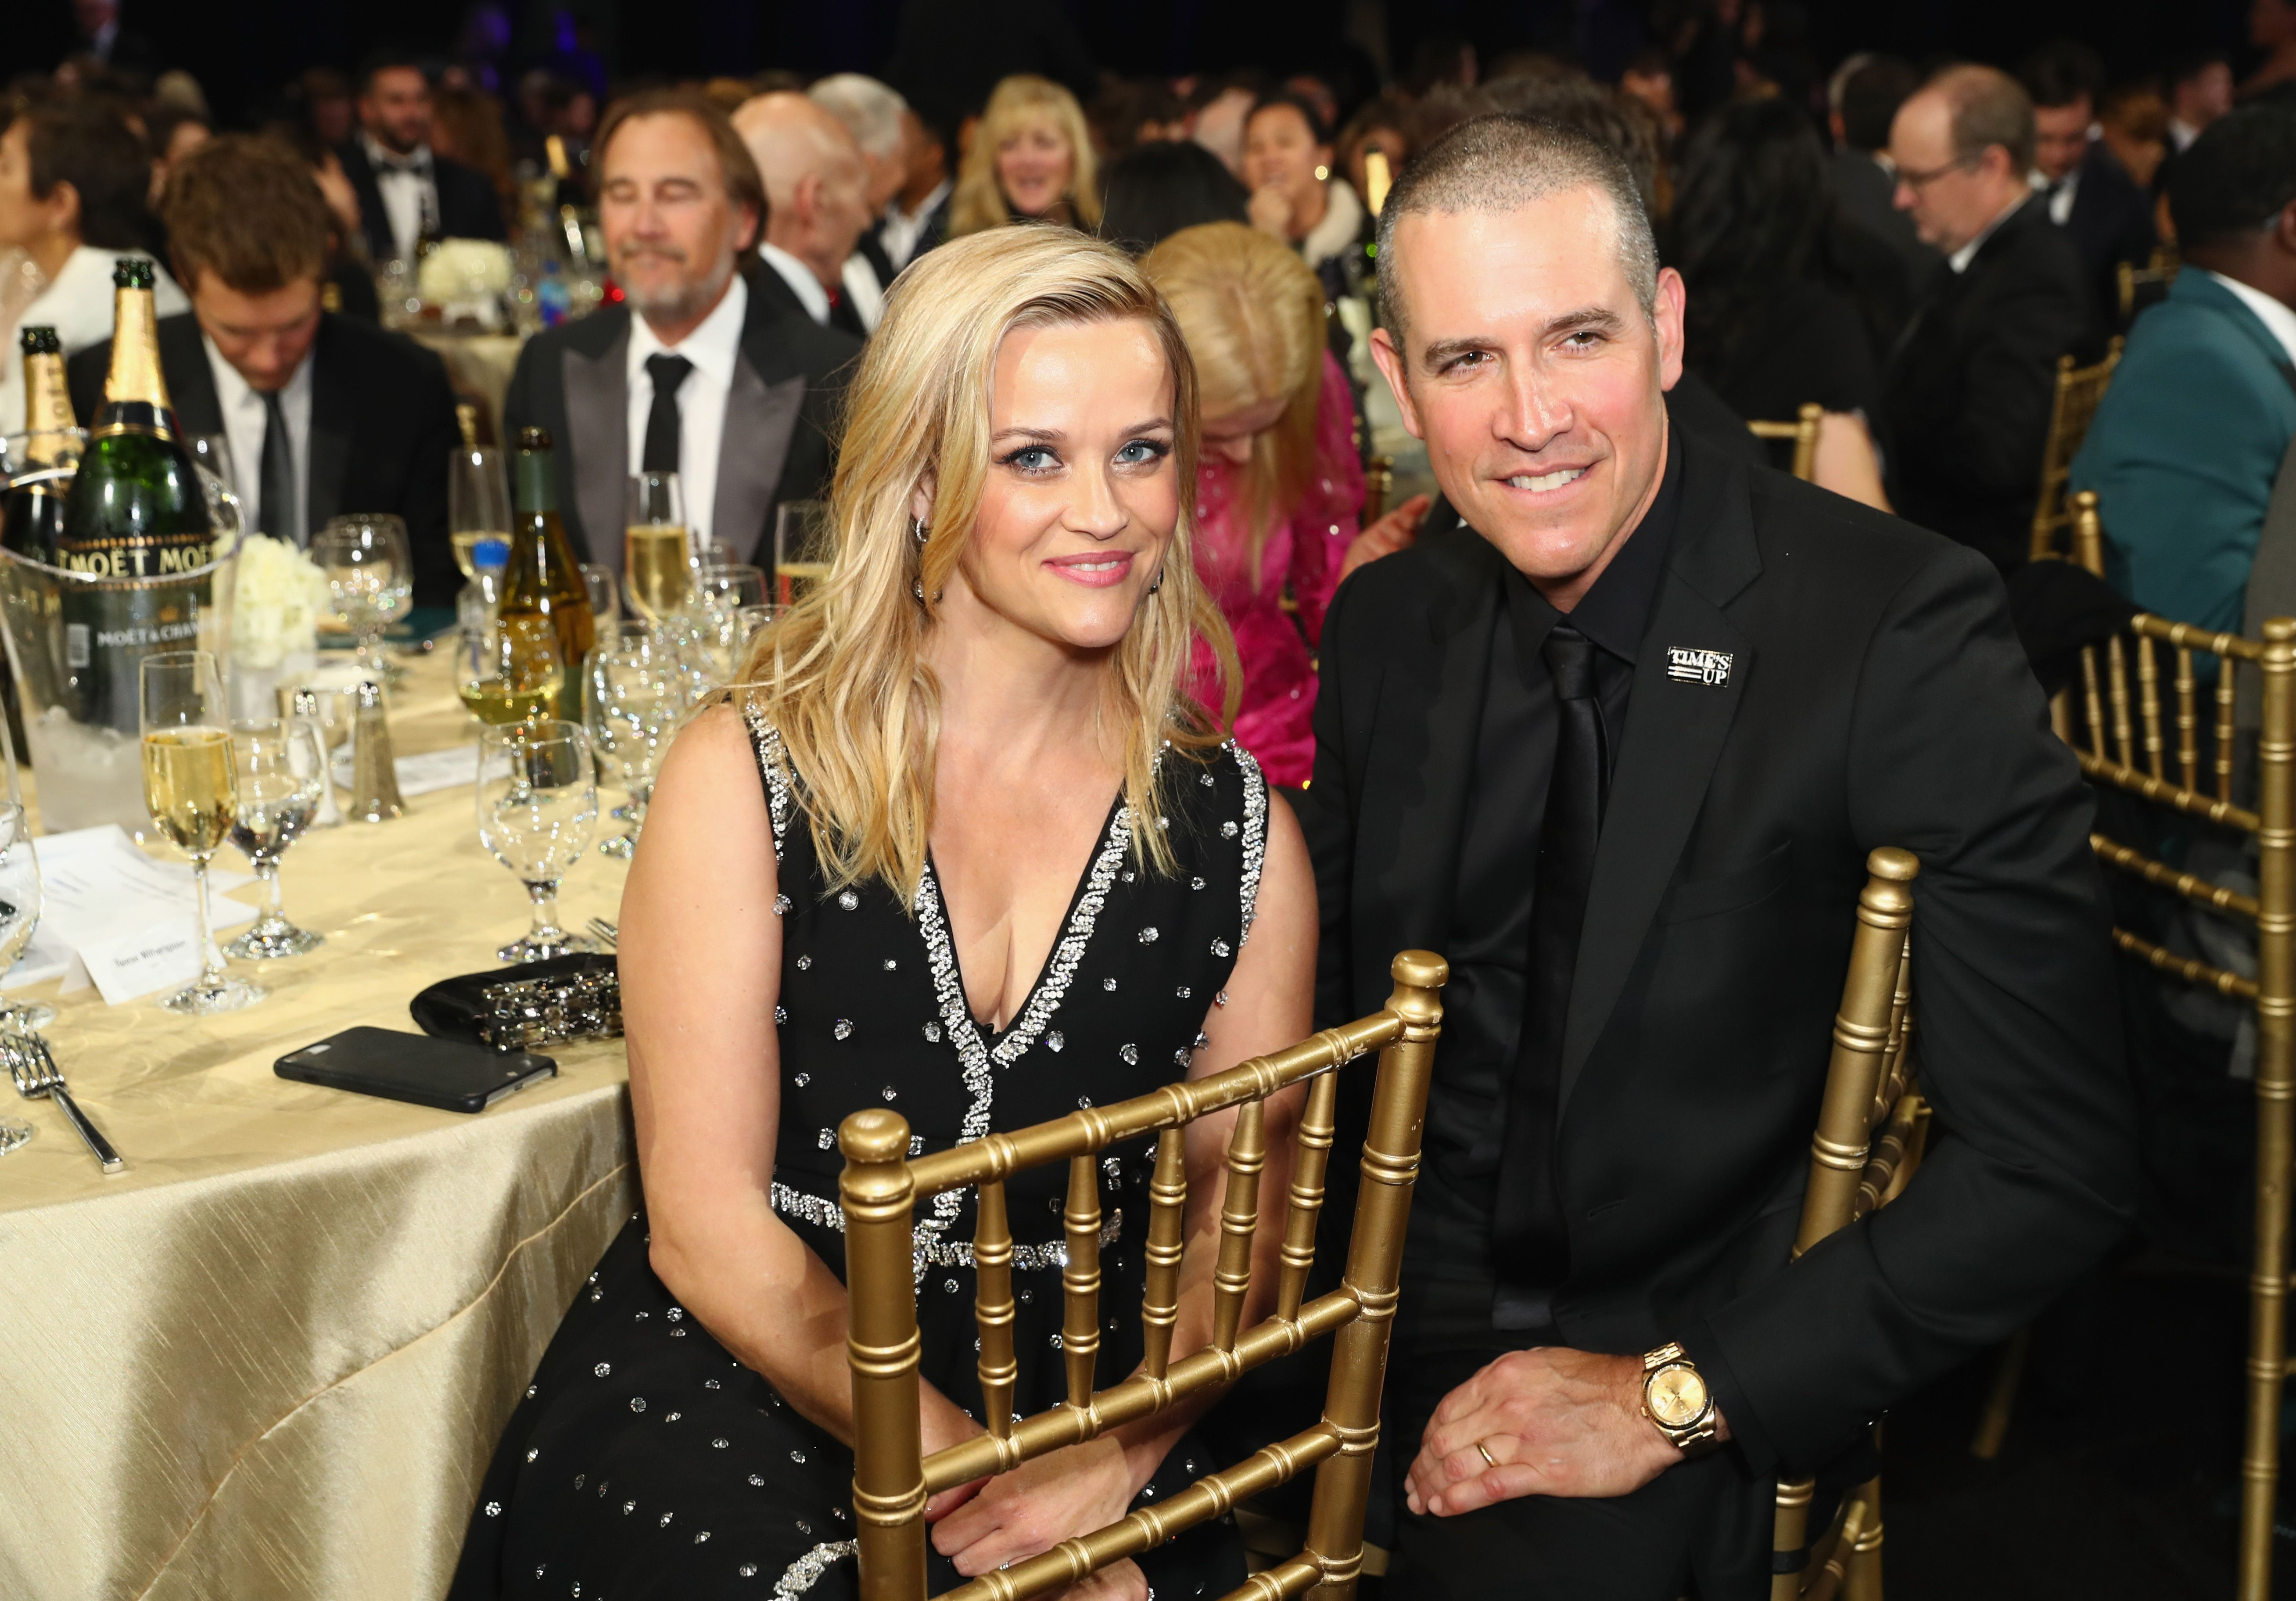 Reese Witherspoon and husband Jim Toth at the 23rd Annual Critics' Choice Awards in 2018 in Santa Monica, California | Source: Getty Images